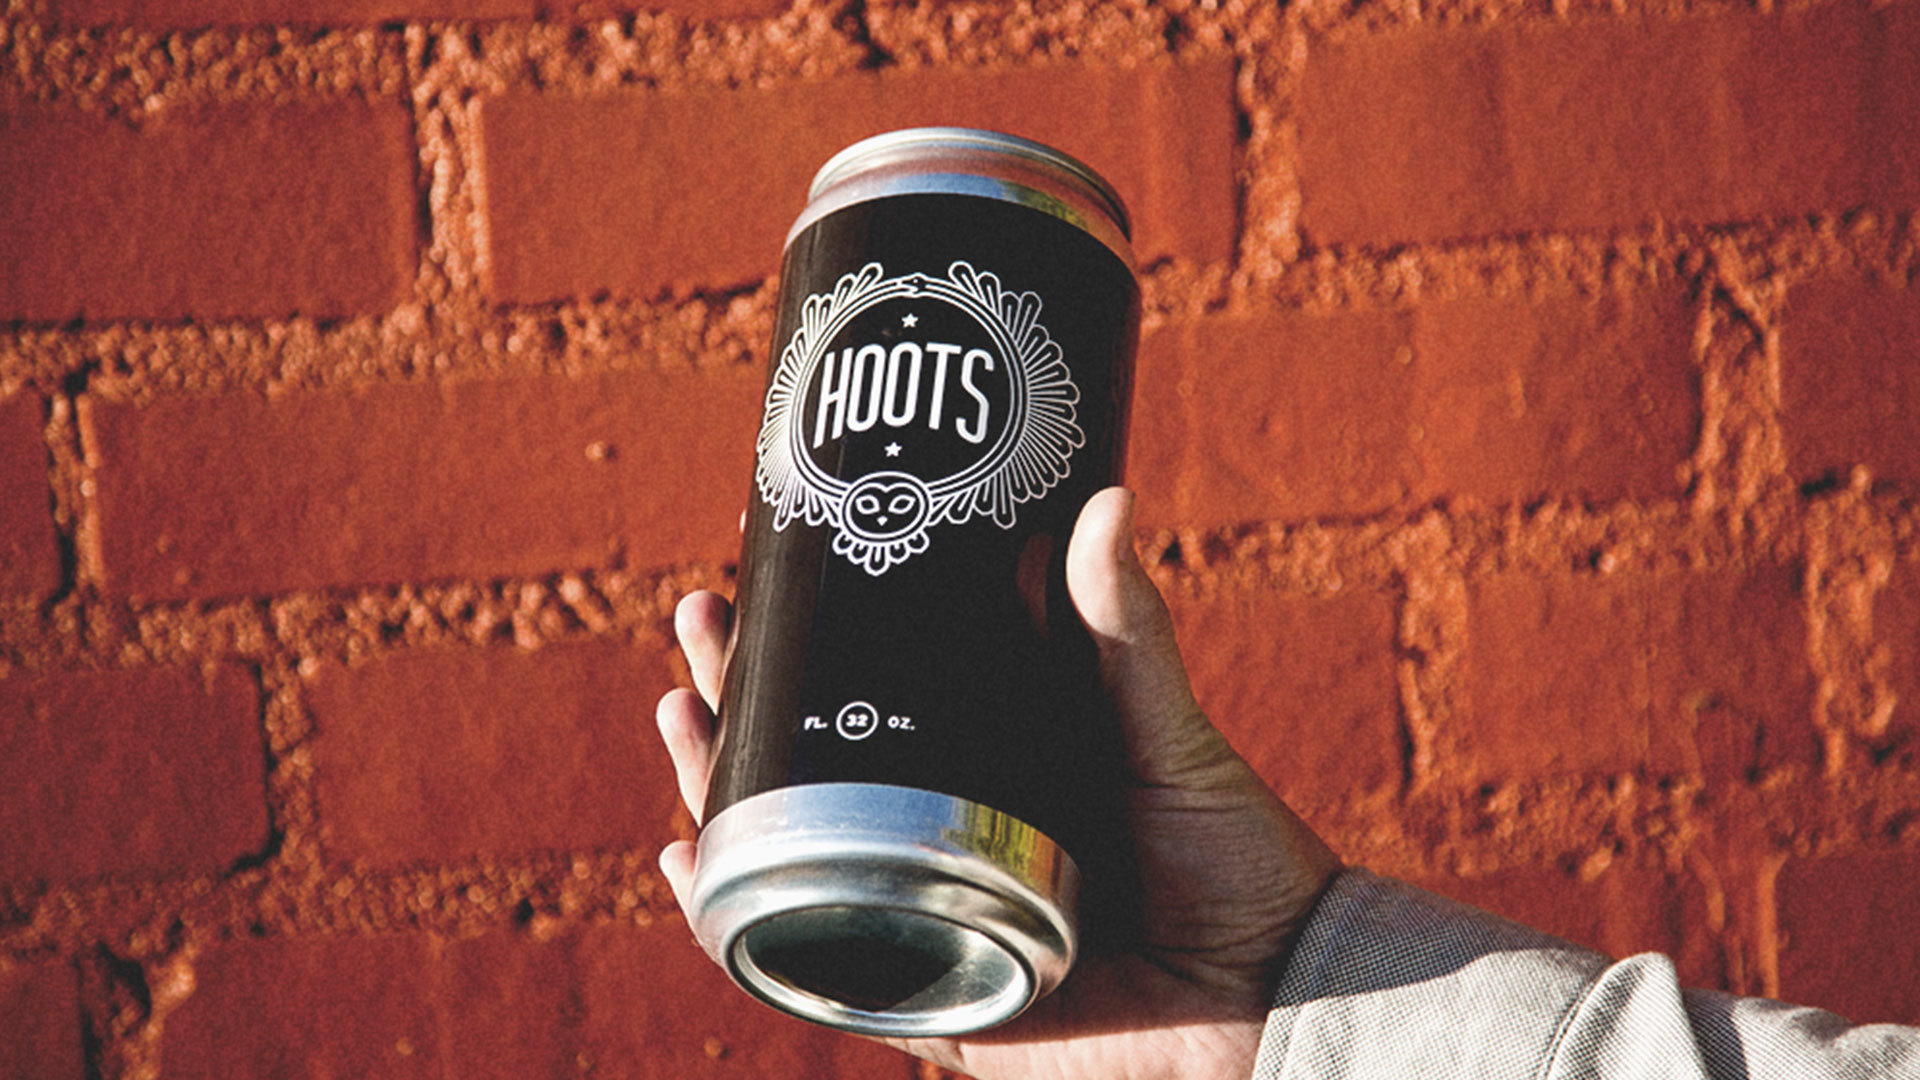 Hoots Crowler